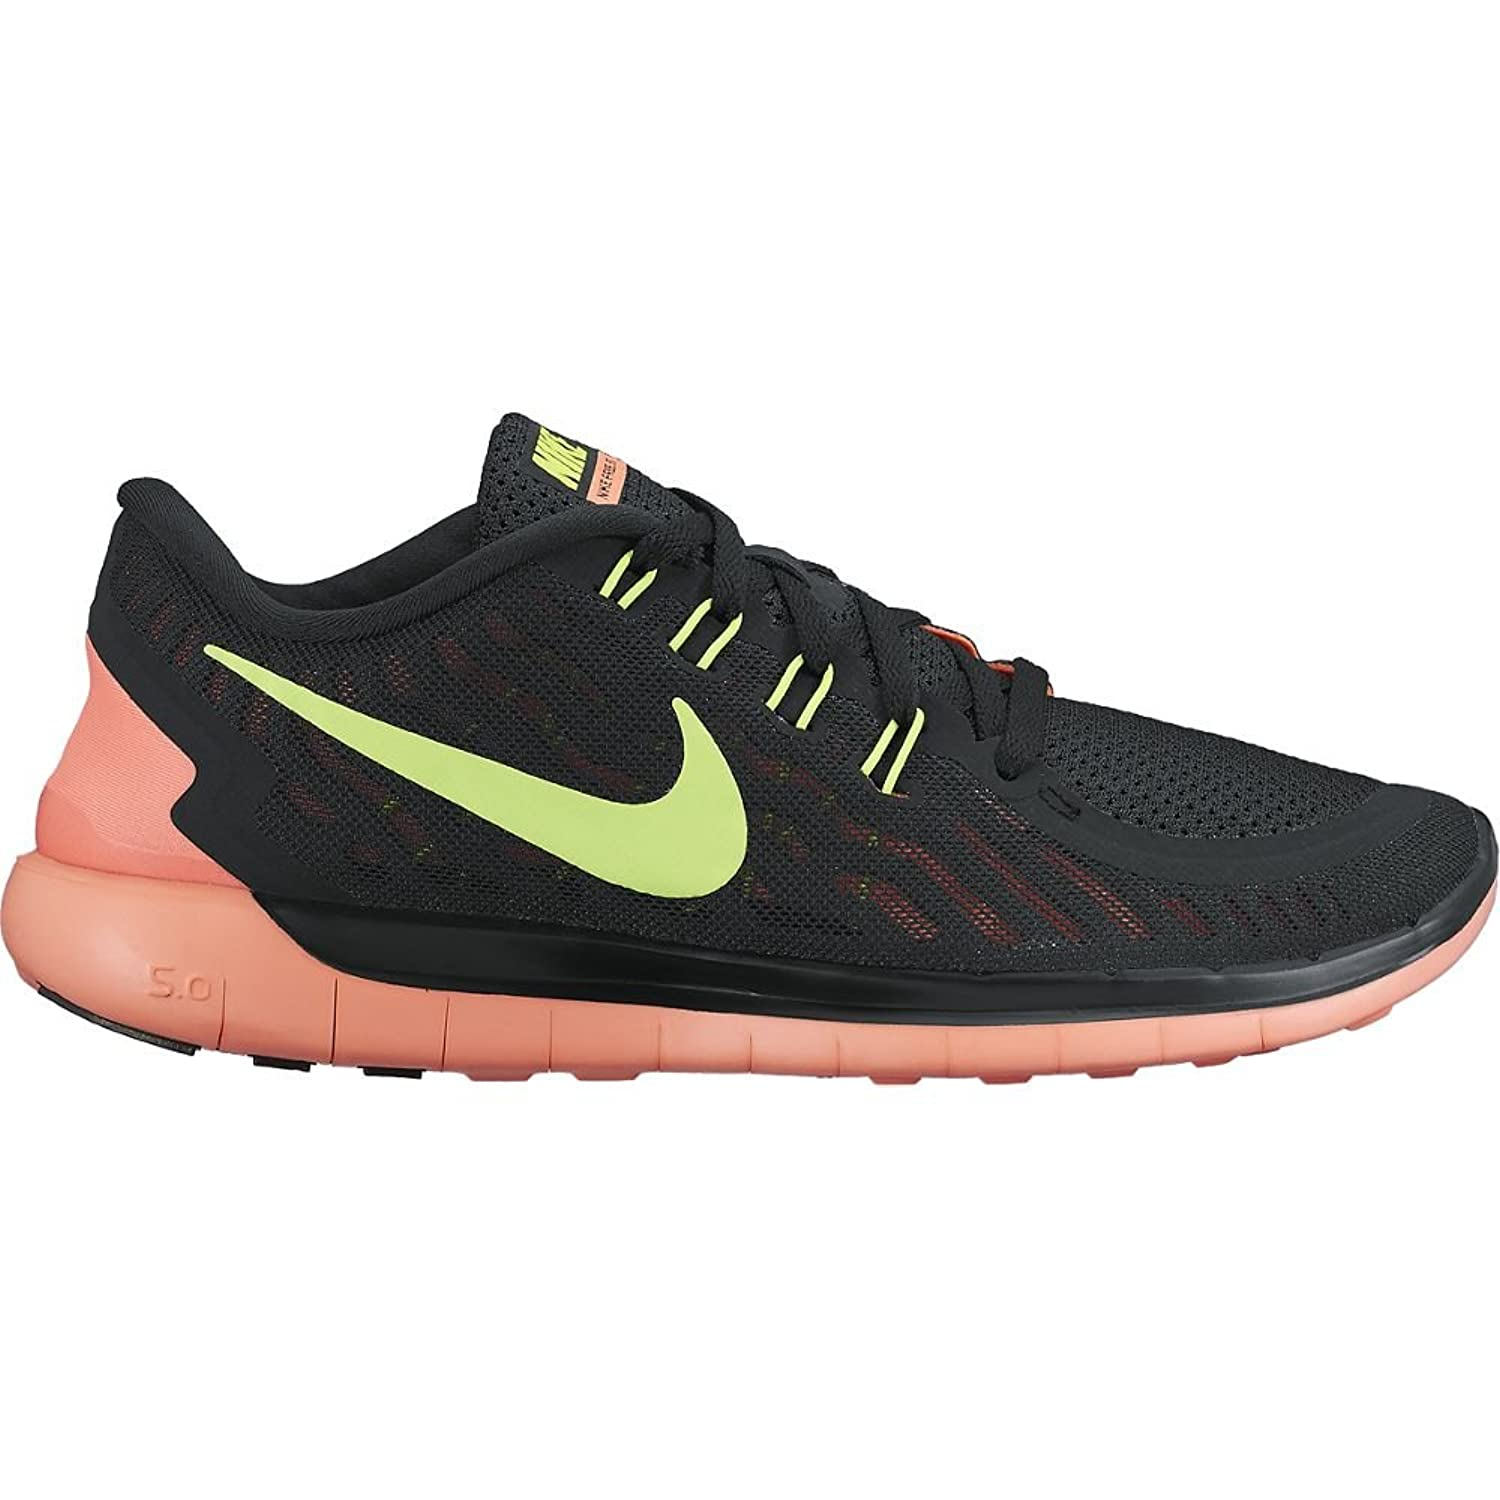 Amazon.com | Women's Nike Free 5.0 Running Shoes Black/Bright Mango/Volt (5  B(M) US) | Road Running